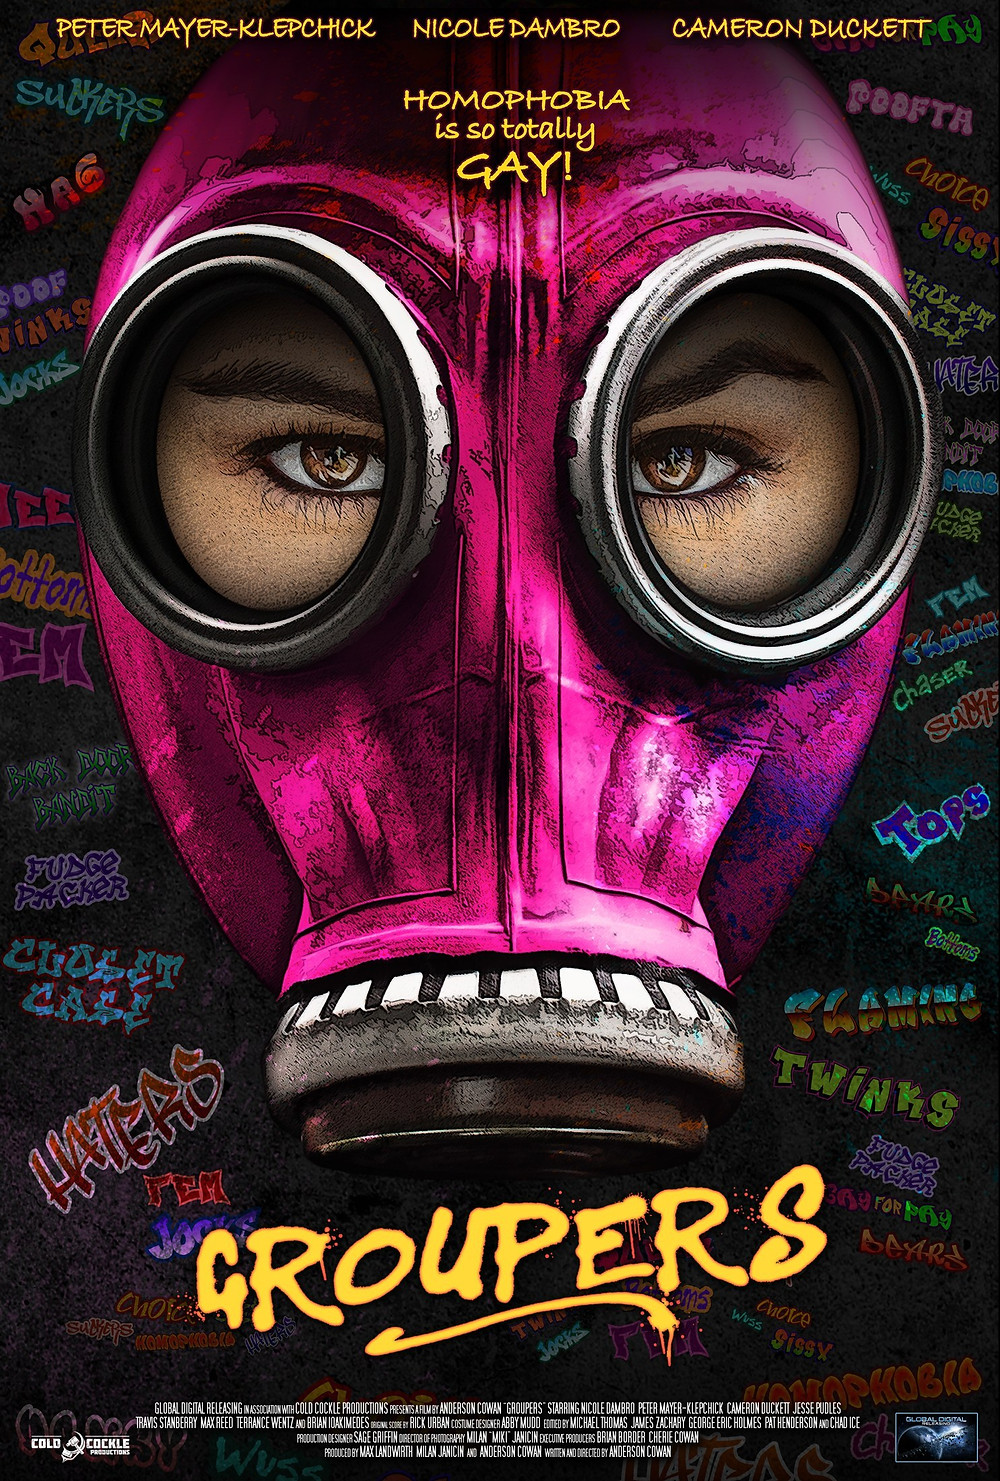 hot pink gas mask pop art movie poster for Groupers